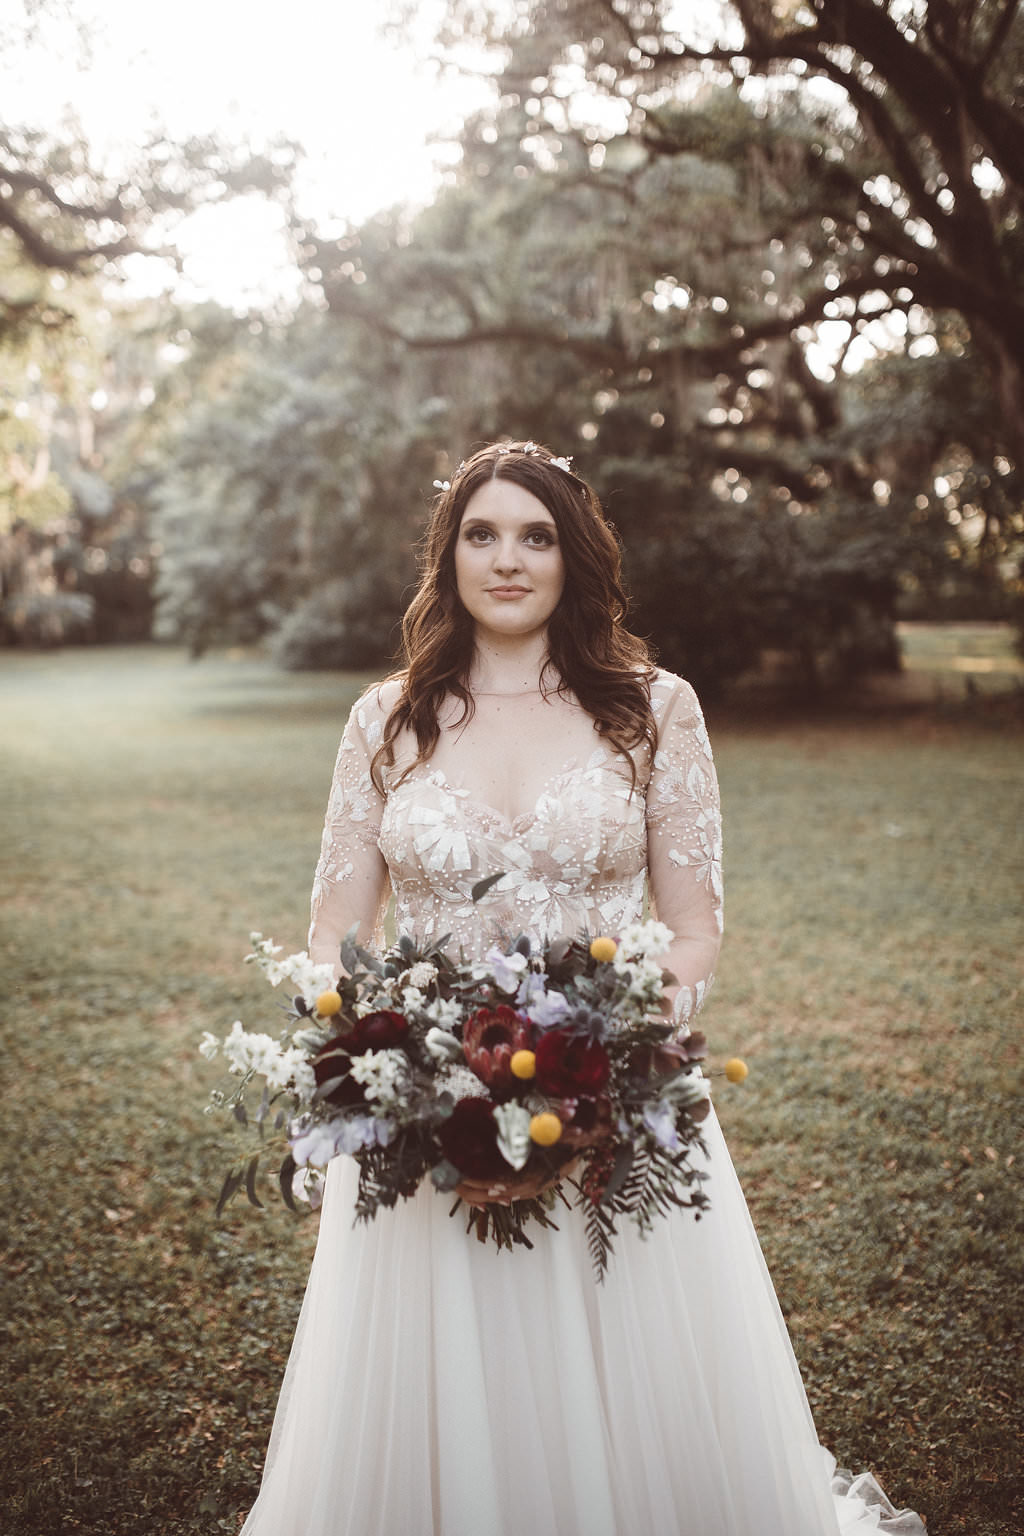 Bride Bridal Dress Gown Hayley Paige Long Sleeves Tulle Skirt Charleston Wedding Katherine Dalton Photography